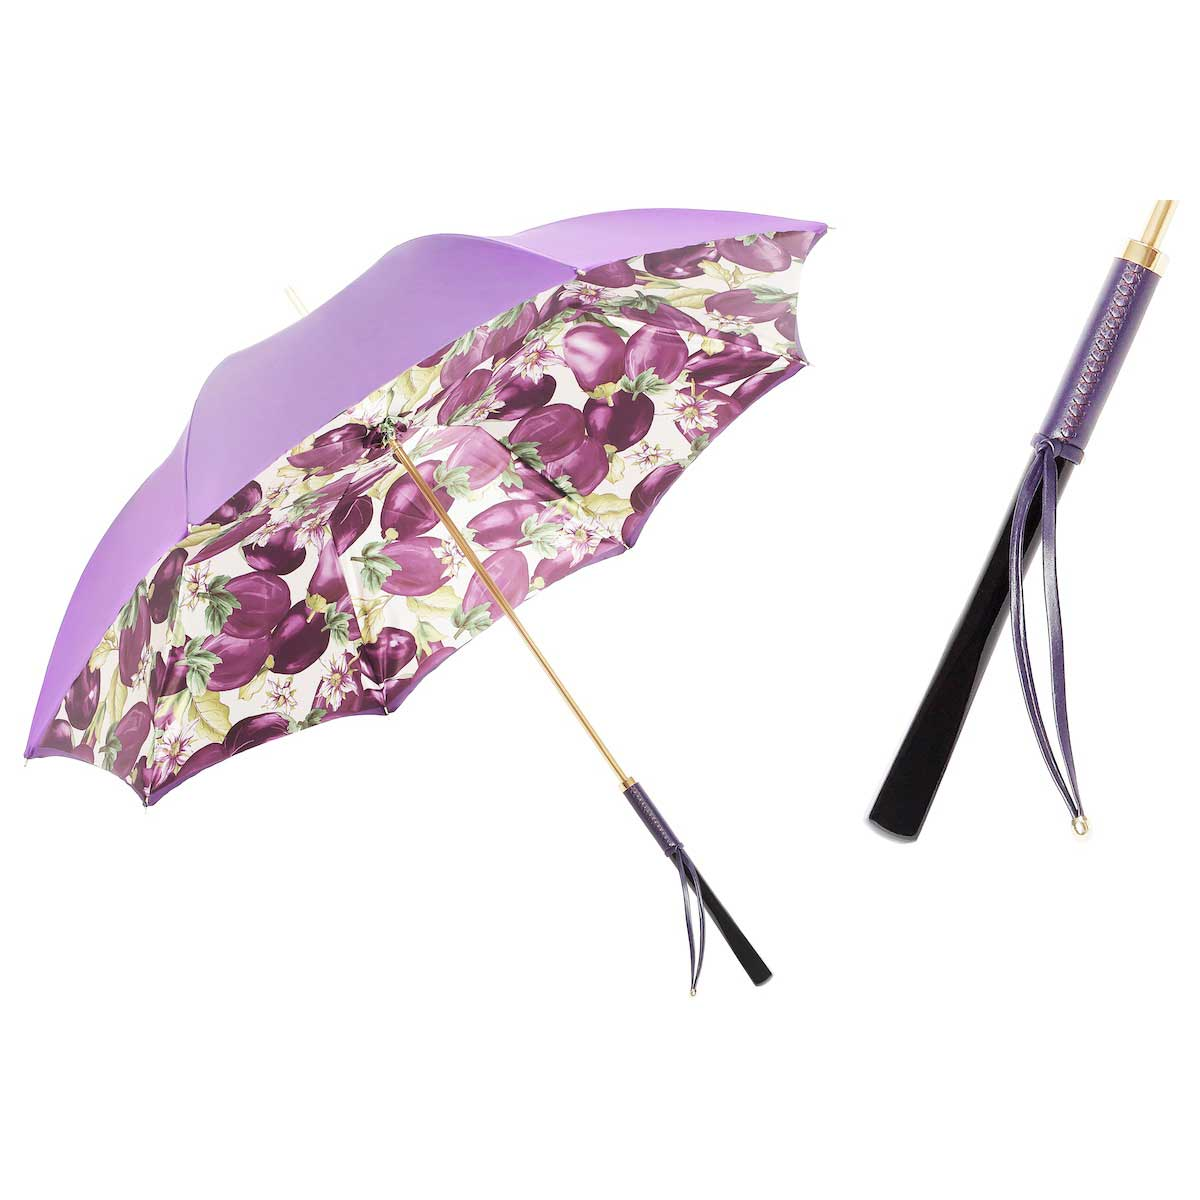 Pasotti Lilac Aubergine Eggplant Flowered Women's Umbrella